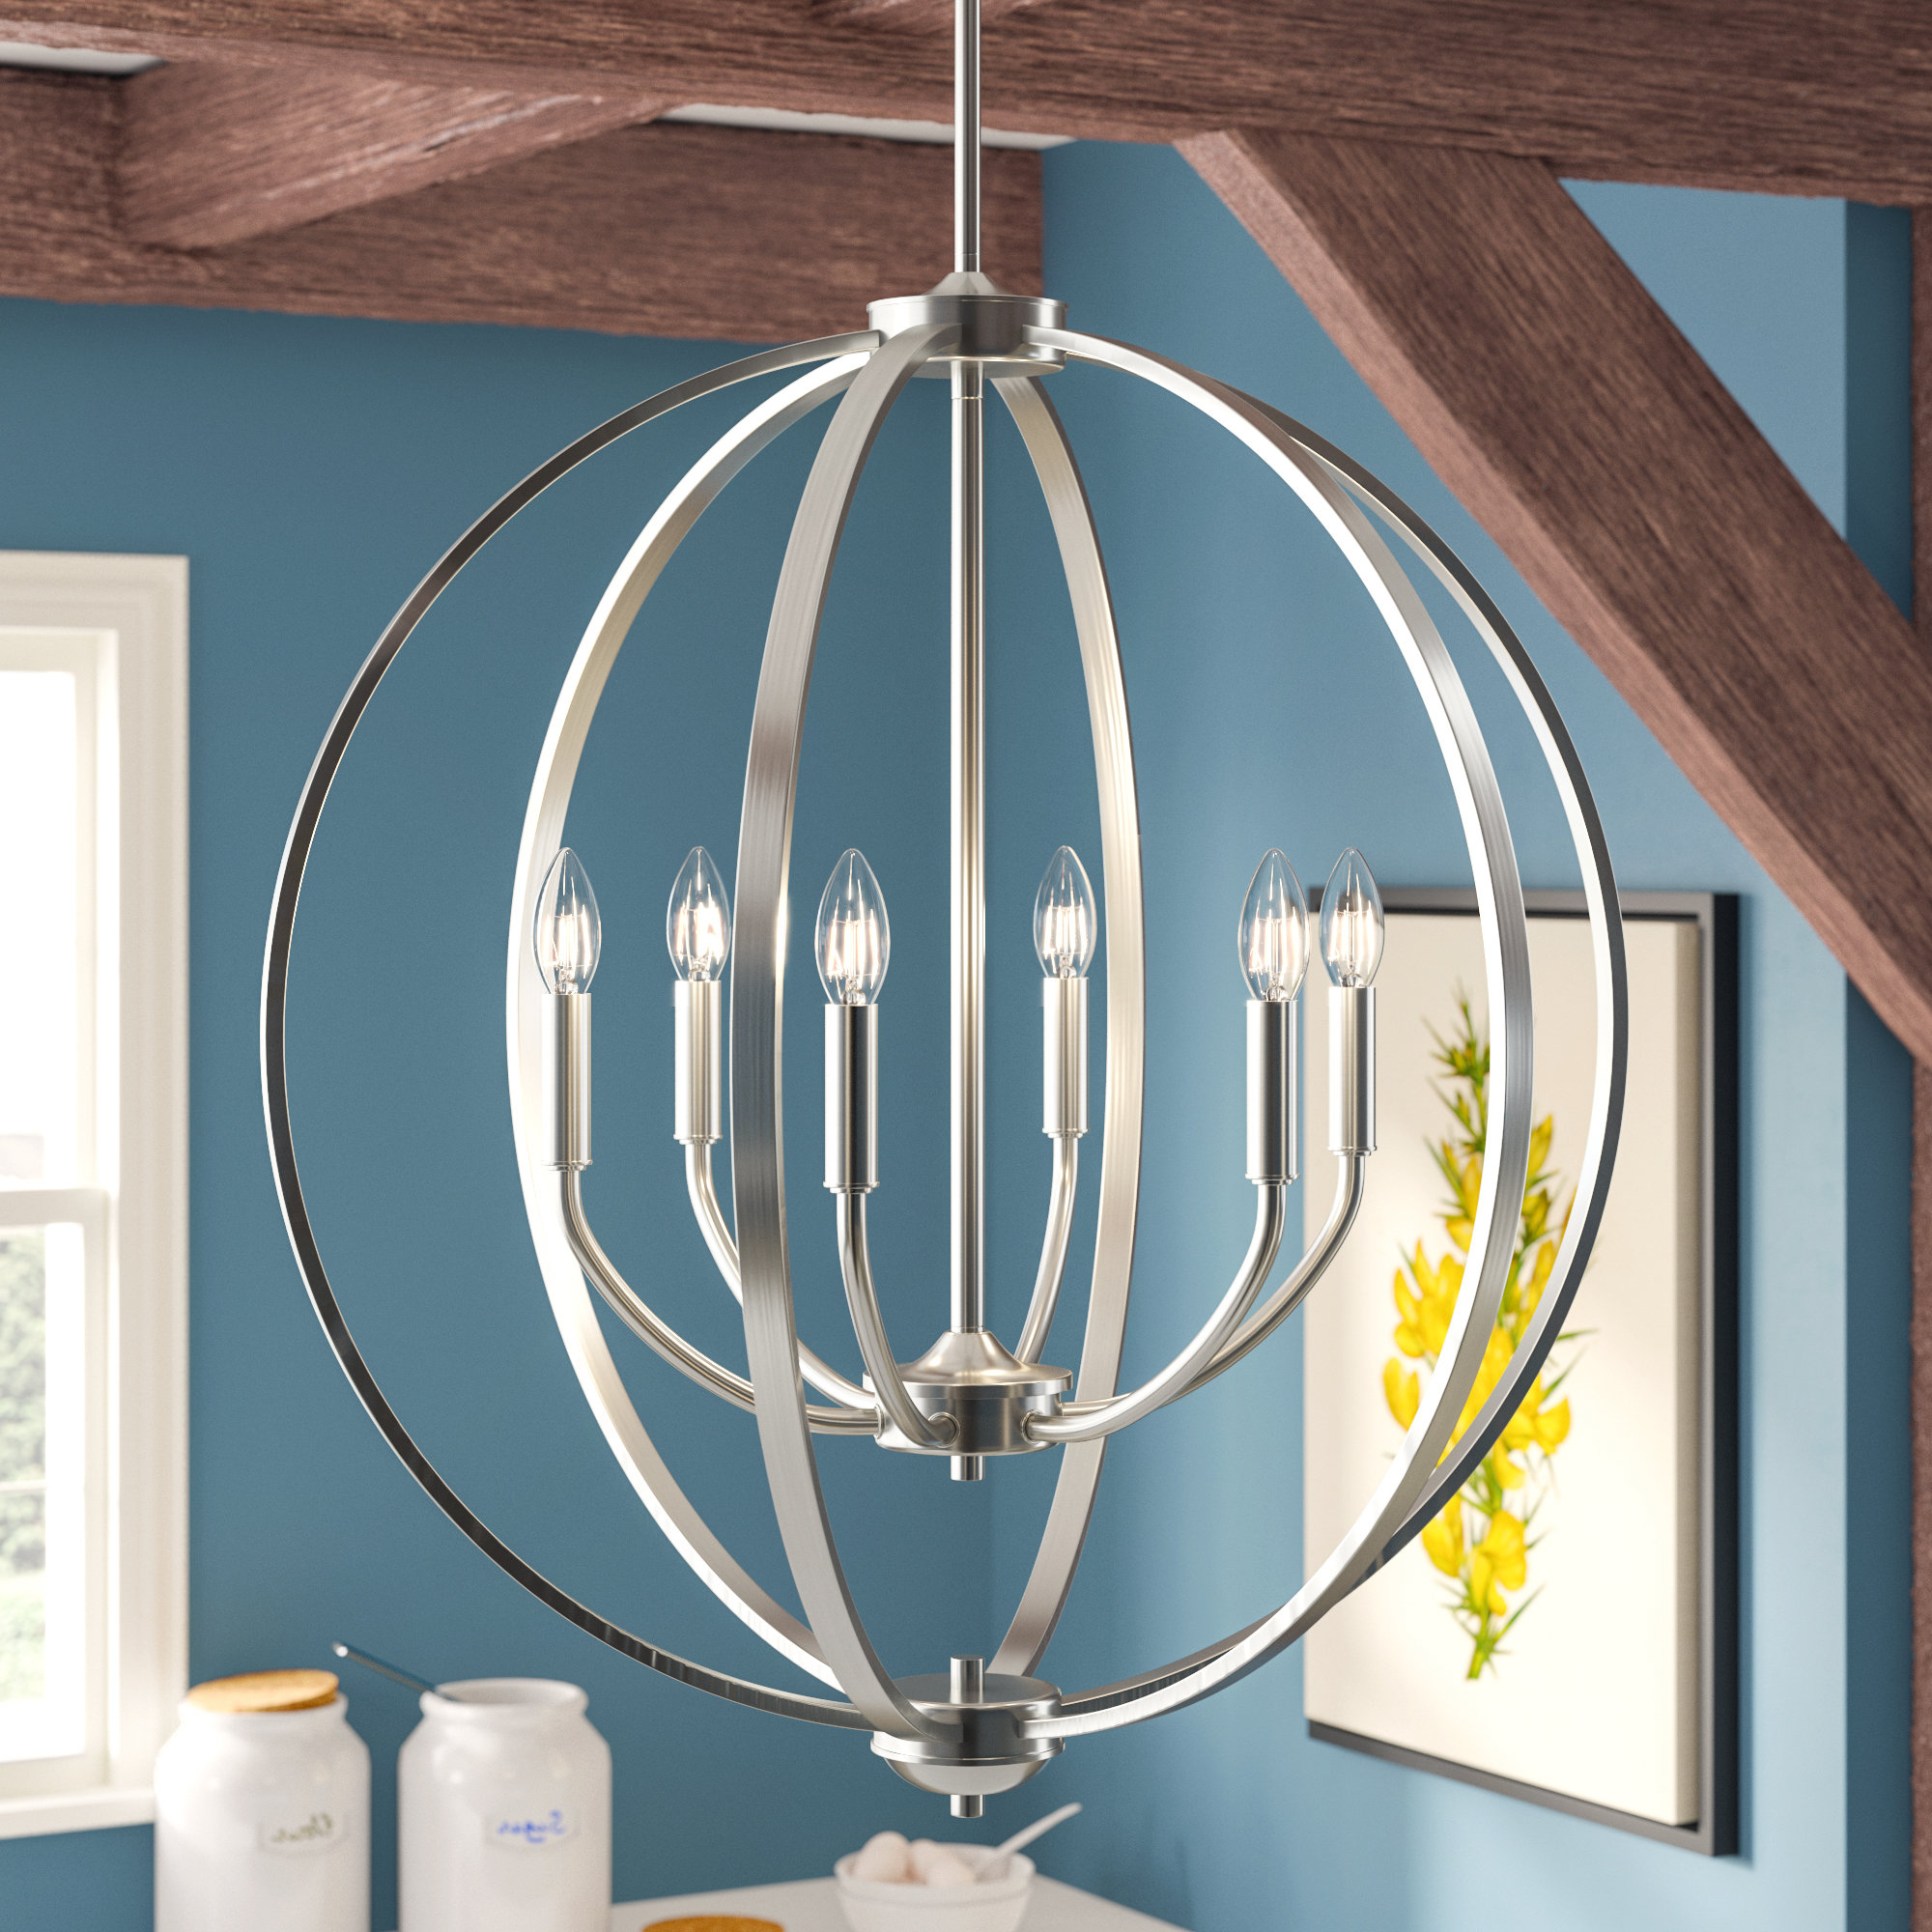 Current Gregoire 6 Light Globe Chandeliers With Regard To Earlene 6 Light Globe Chandelier (View 6 of 25)